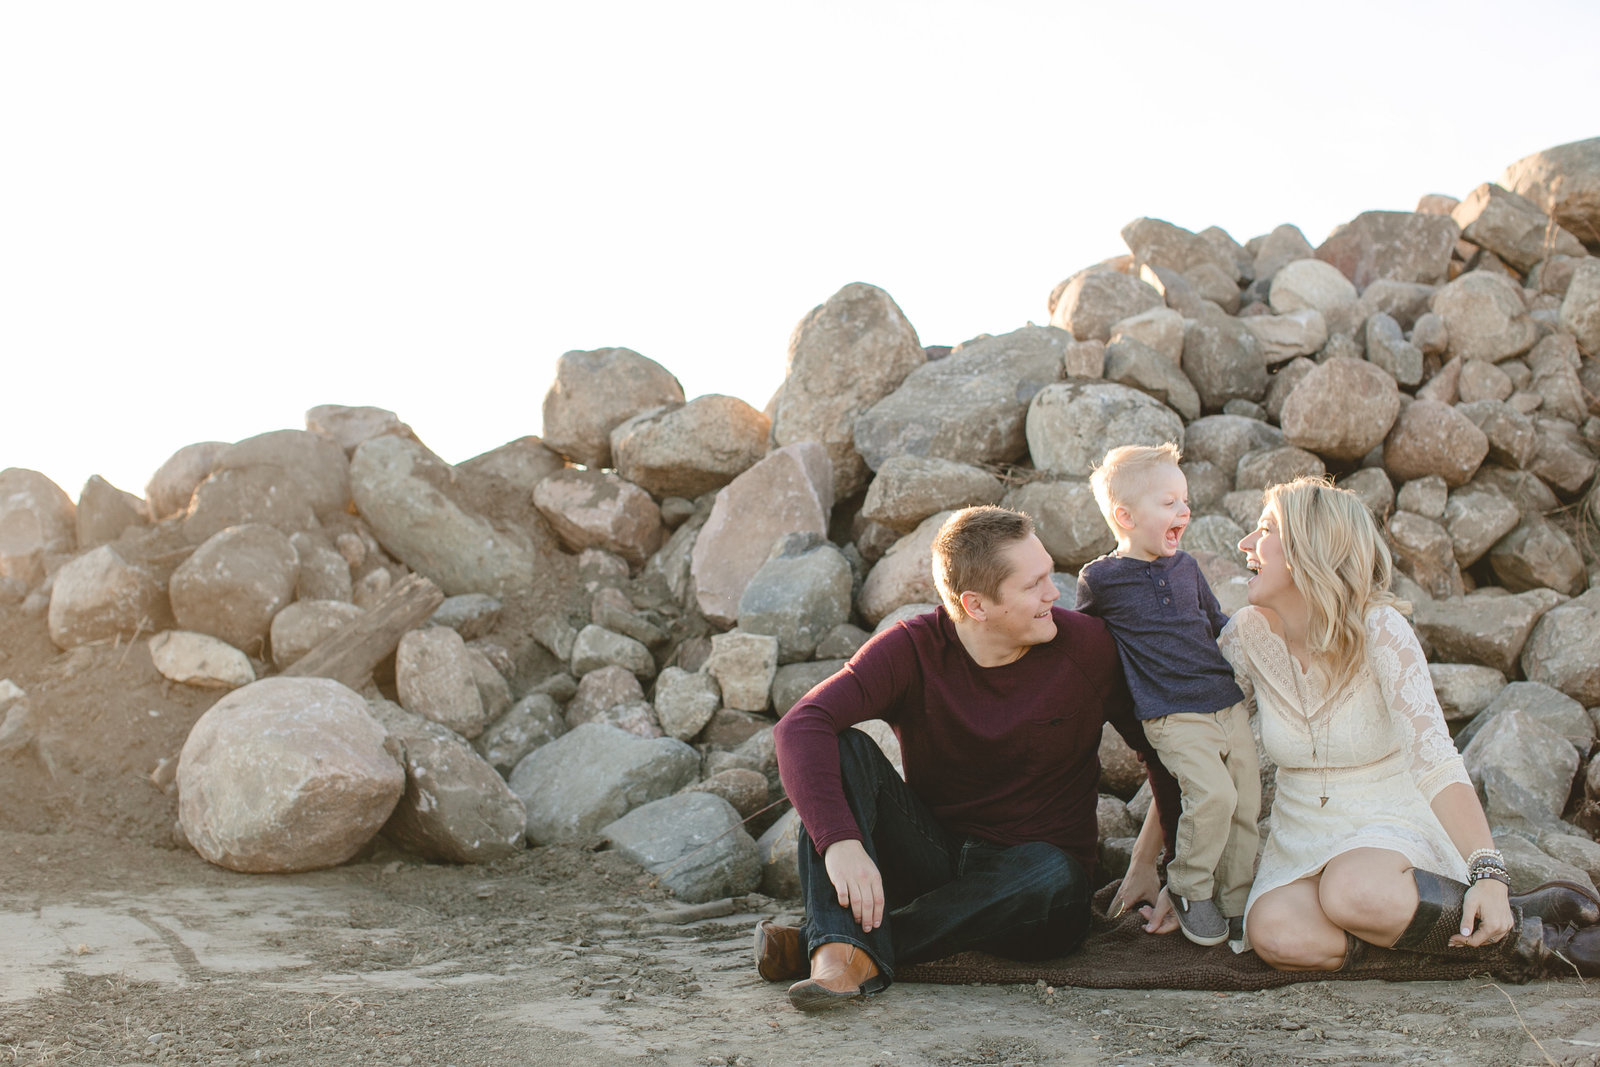 saskatchewan_western_canada_family_portrait_lifestyle_photographer_030